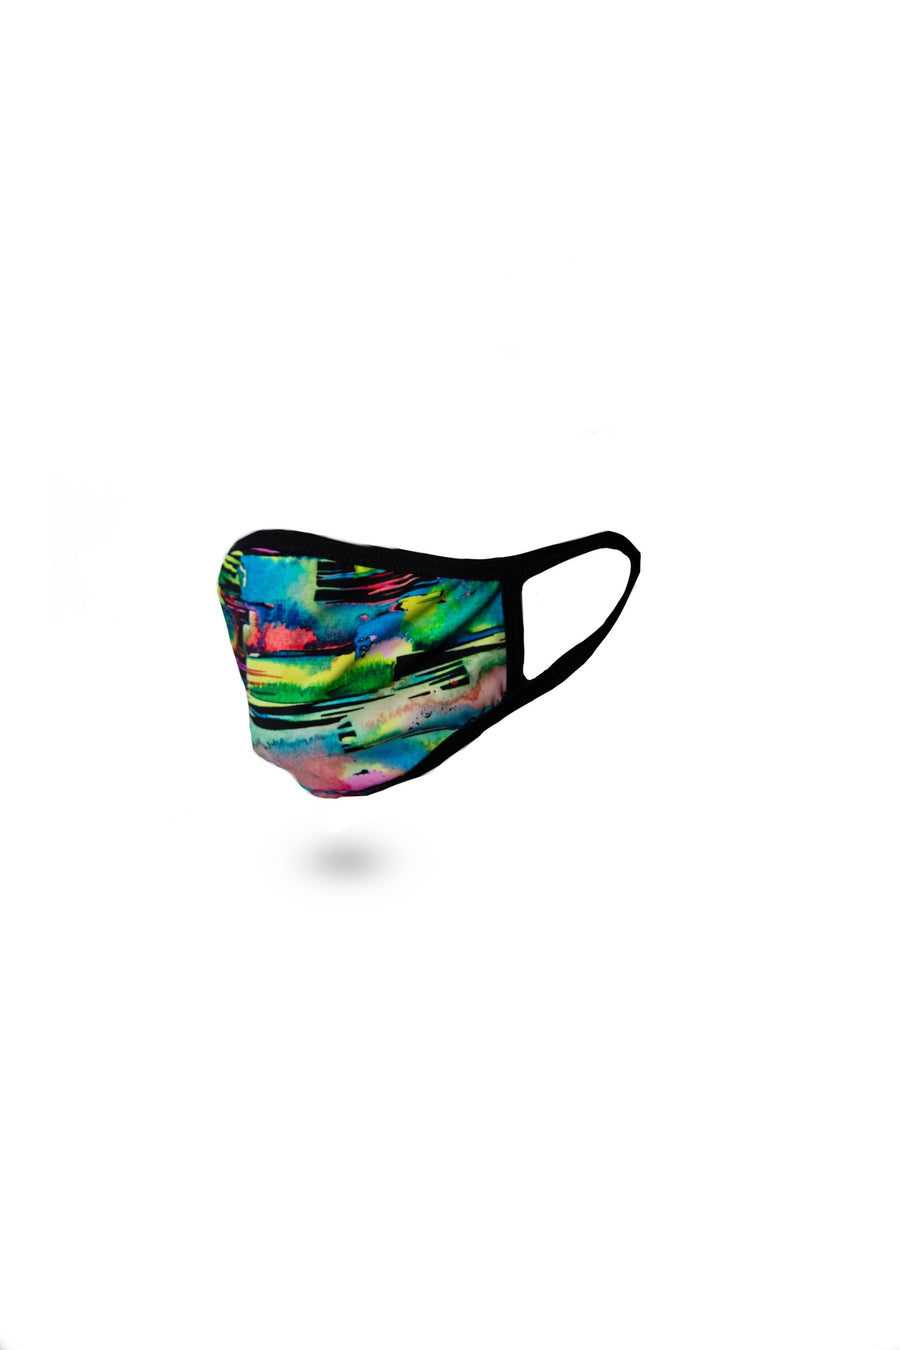 Designer Mens Underwear | Marco Marco | Oil Slick Face Mask